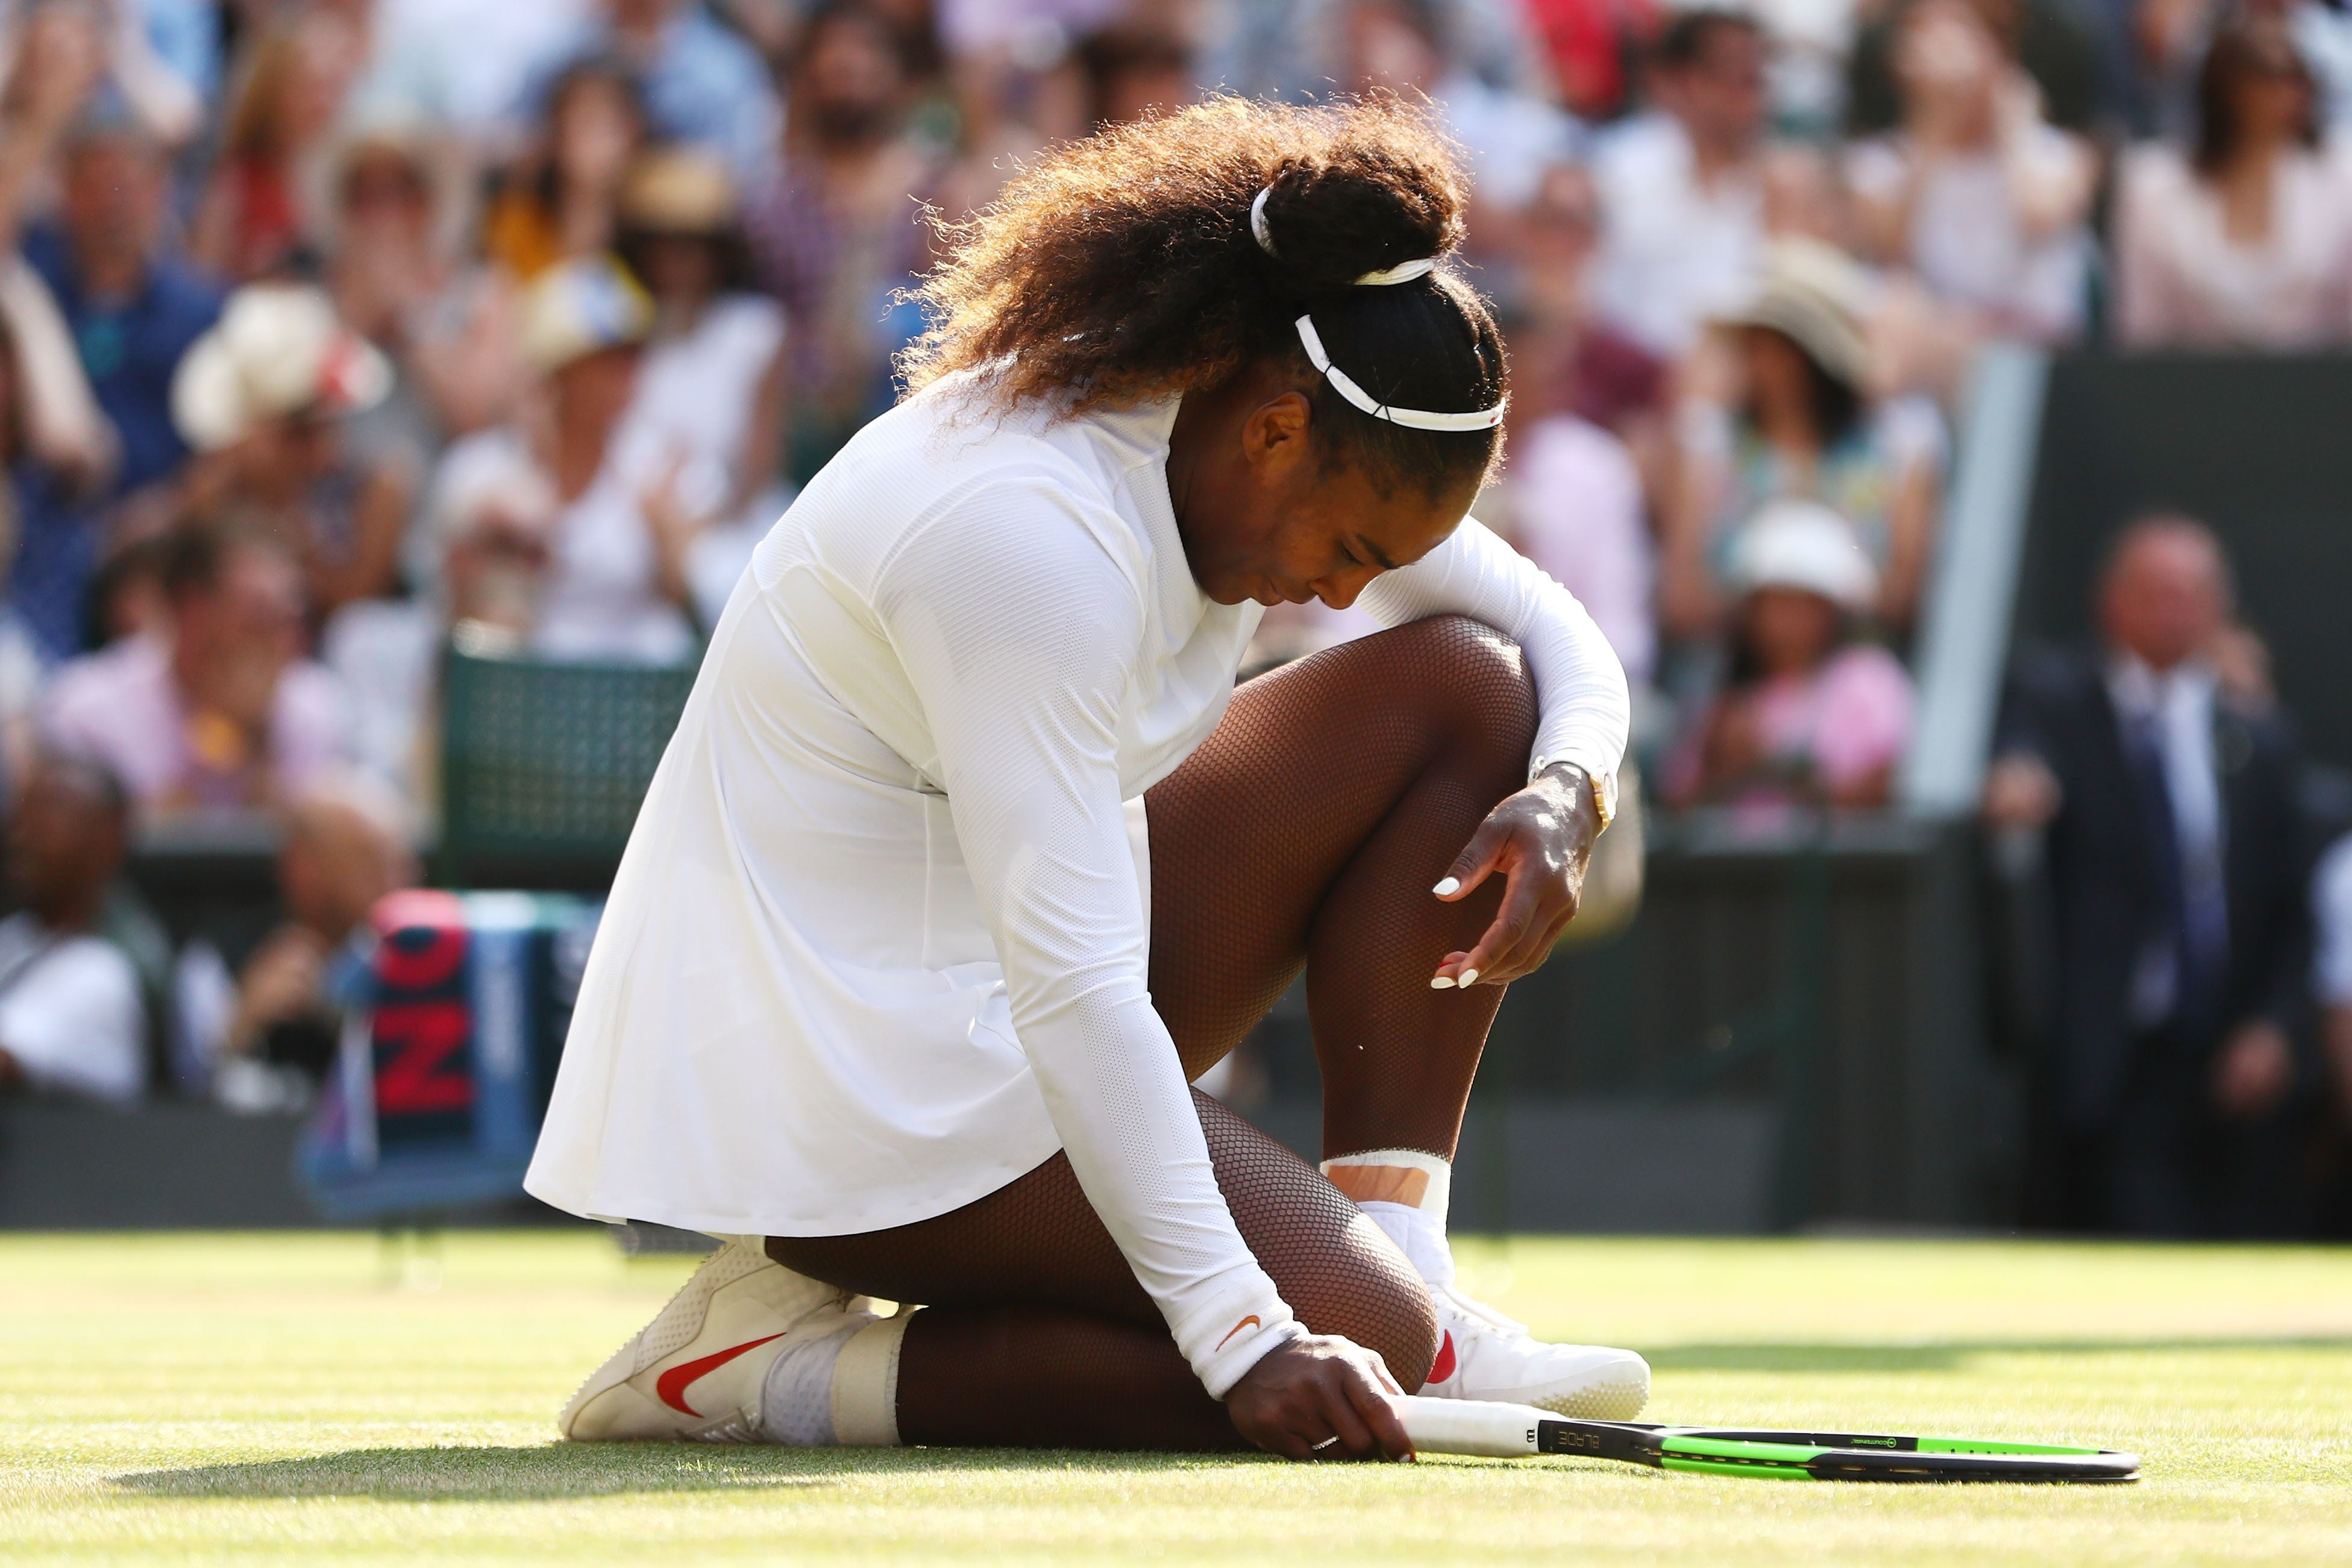 LONDON, ENGLAND - JULY 14:  Serena Williams of The United States appears dejected during the Ladies' Singles final against Angelique Kerber of Germany on day twelve of the Wimbledon Lawn Tennis Championships at All England Lawn Tennis and Croquet Club on July 14, 2018 in London, England.  (Photo by Michael Steele/Getty Images)